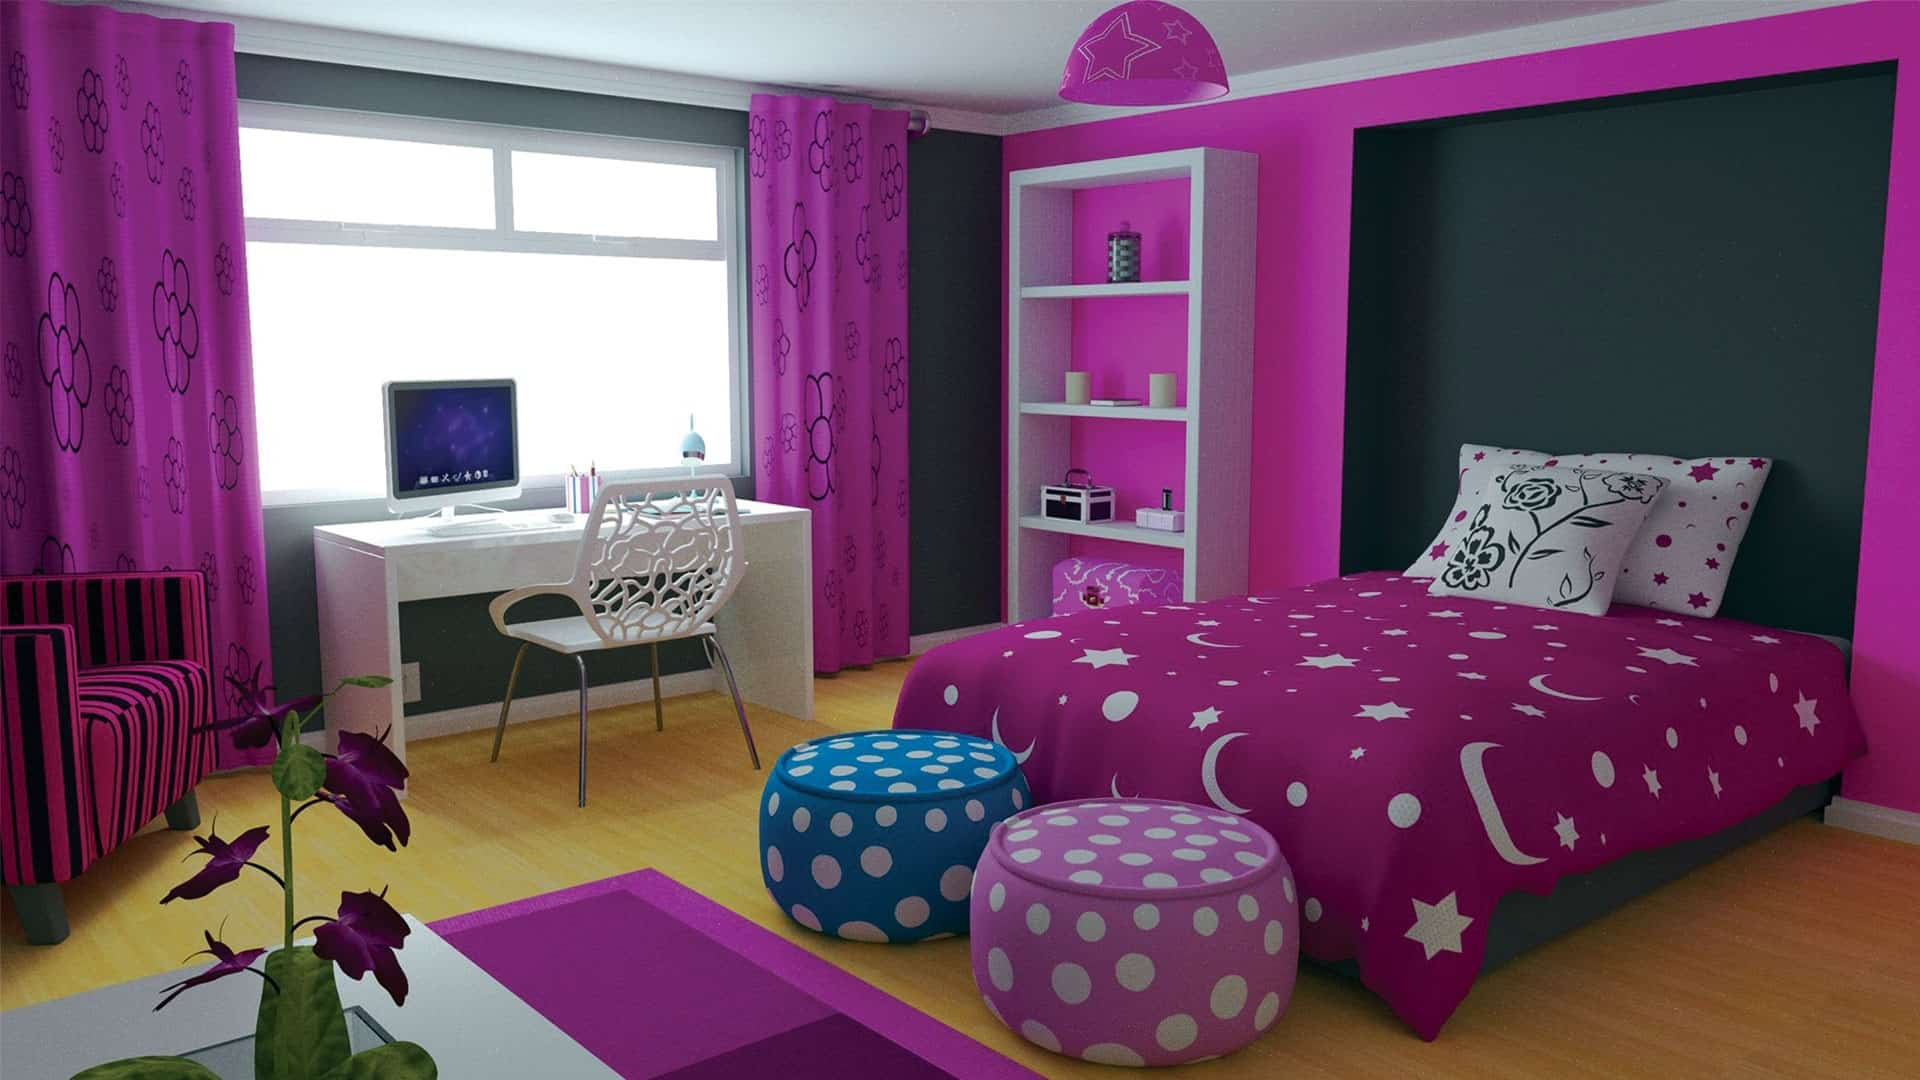 Home decor trends 2017 purple teen room - Room for girls ...